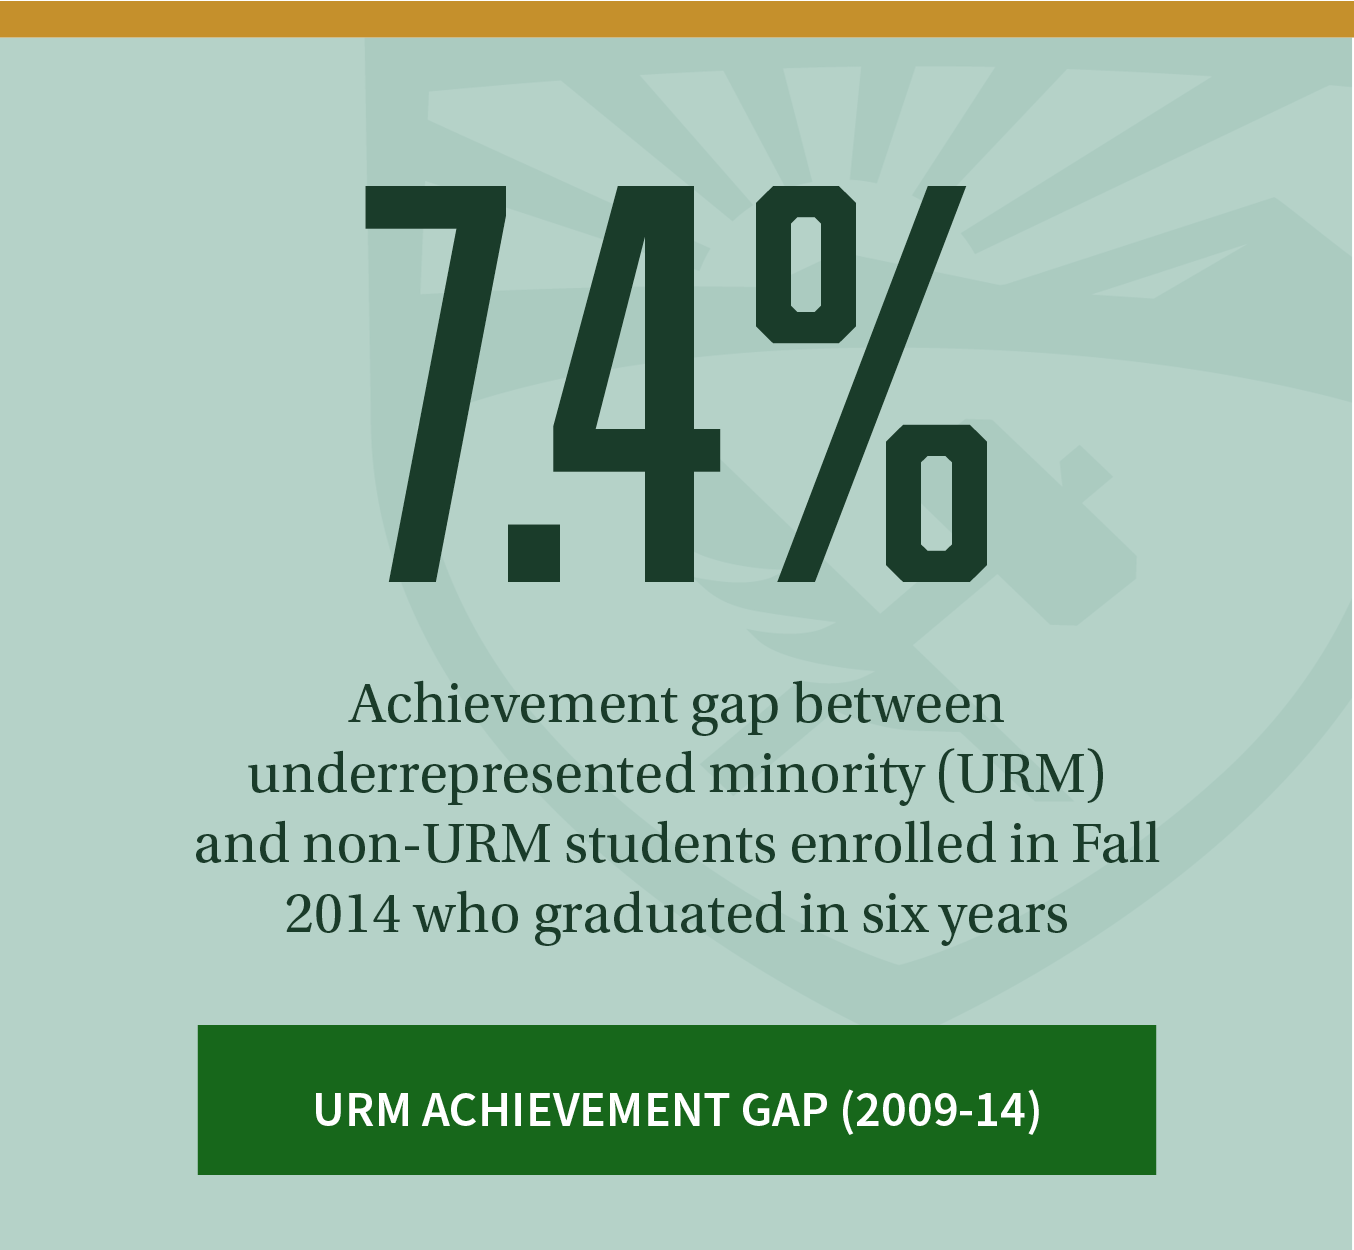 7.4%. Achievement gap between underrepresented minority (URM) and non-URM students enrolled in Fall 2014 who graduated in six years. Click to review additional URM achievement gap data between 2009-14.